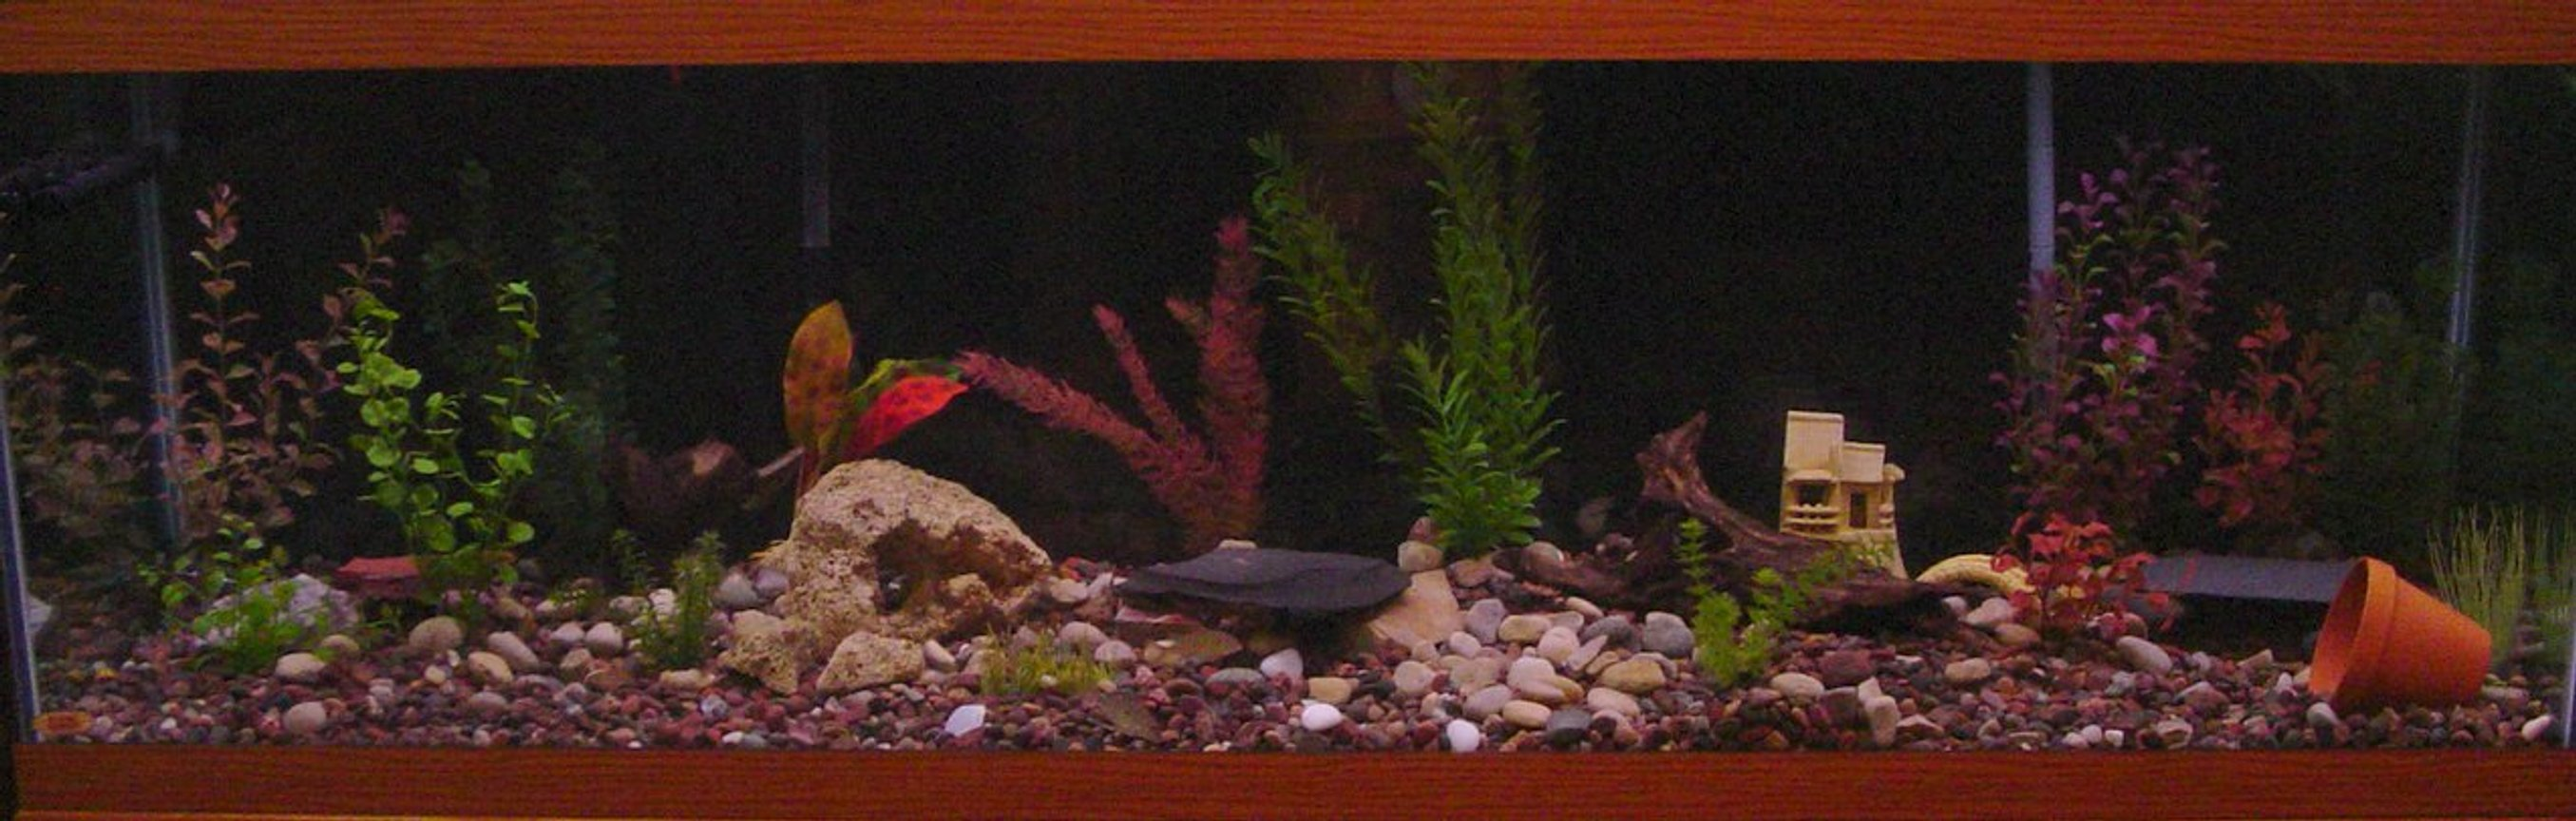 125 gallons freshwater fish tank (mostly fish and non-living decorations) - my 125 gallon tank.